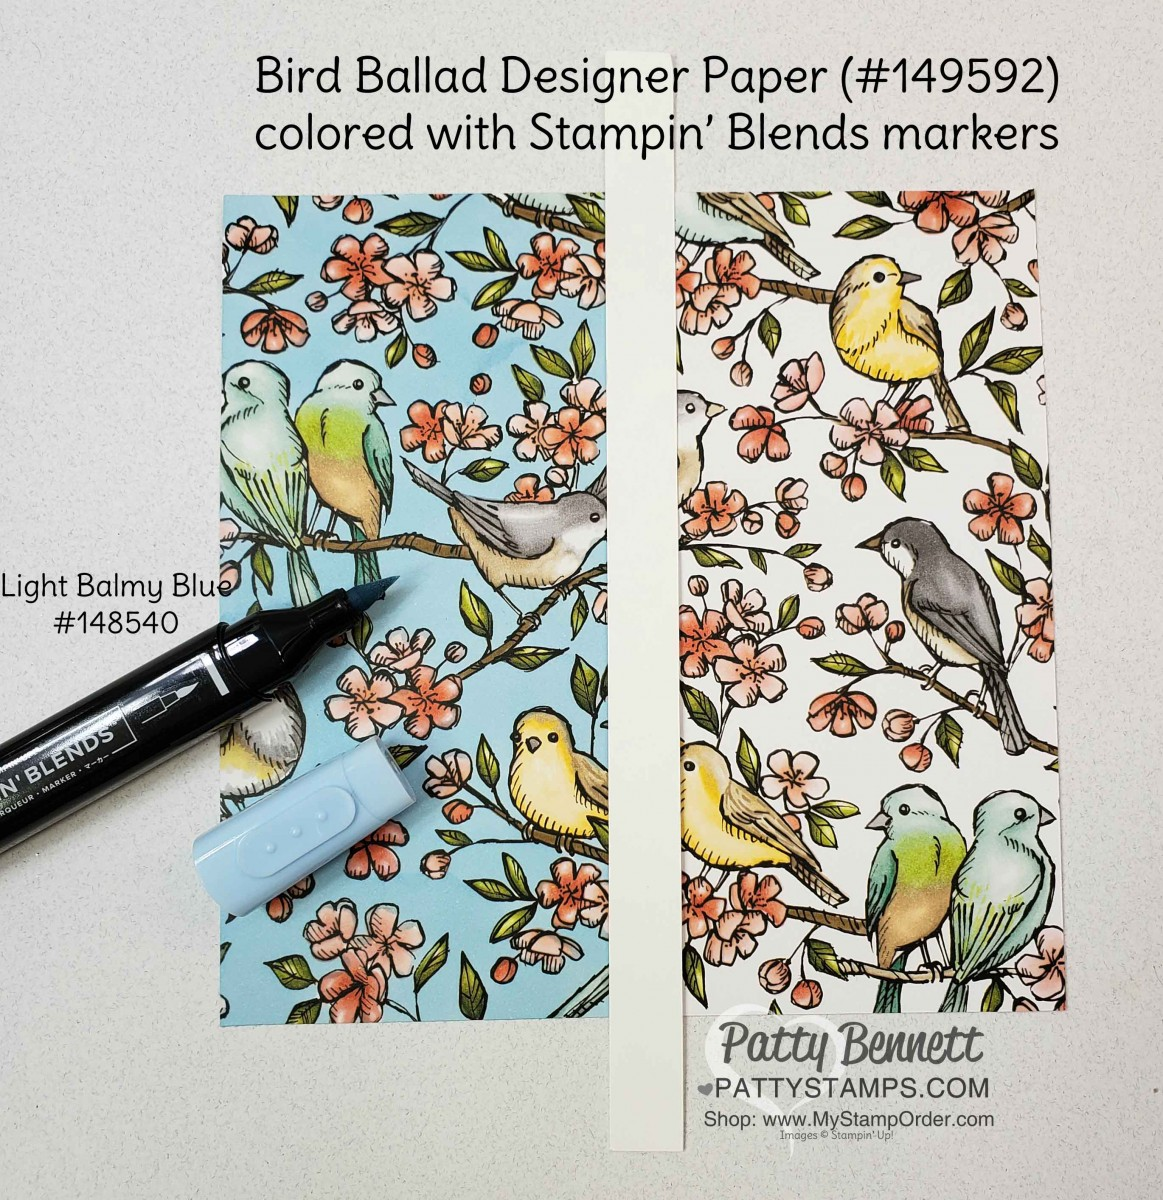 How to Alter Designer Paper with Stampin' Blends